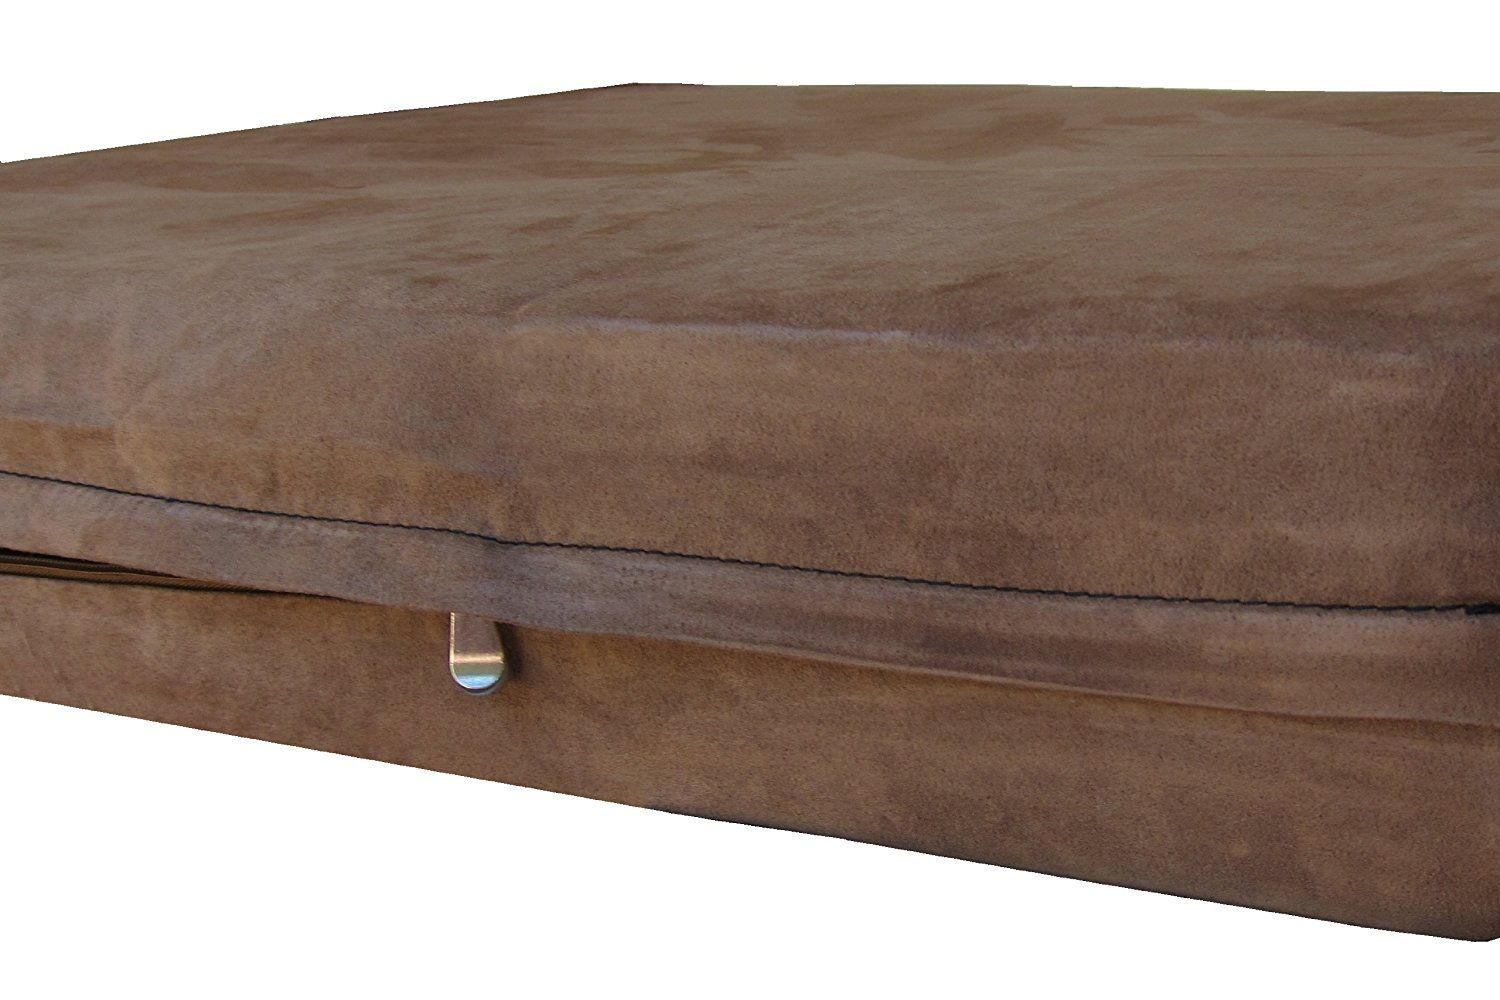 XXL Extra Large Brown MicroSuede Case for Pet Dog Bed 55